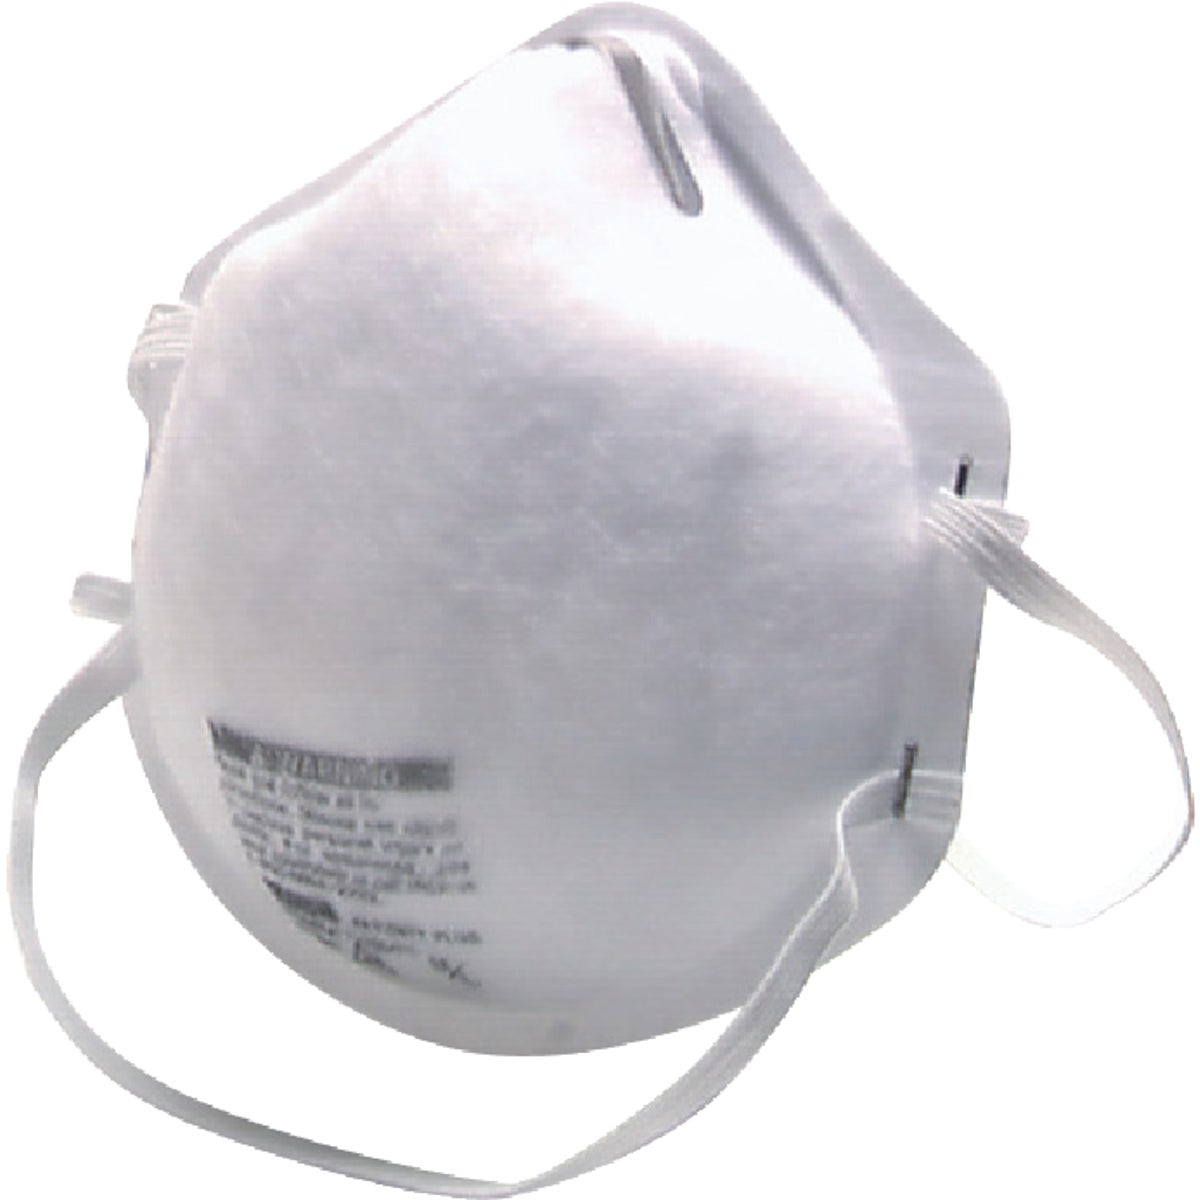 2PK N95 RESPIRATORS - 817633 by Msa Safety